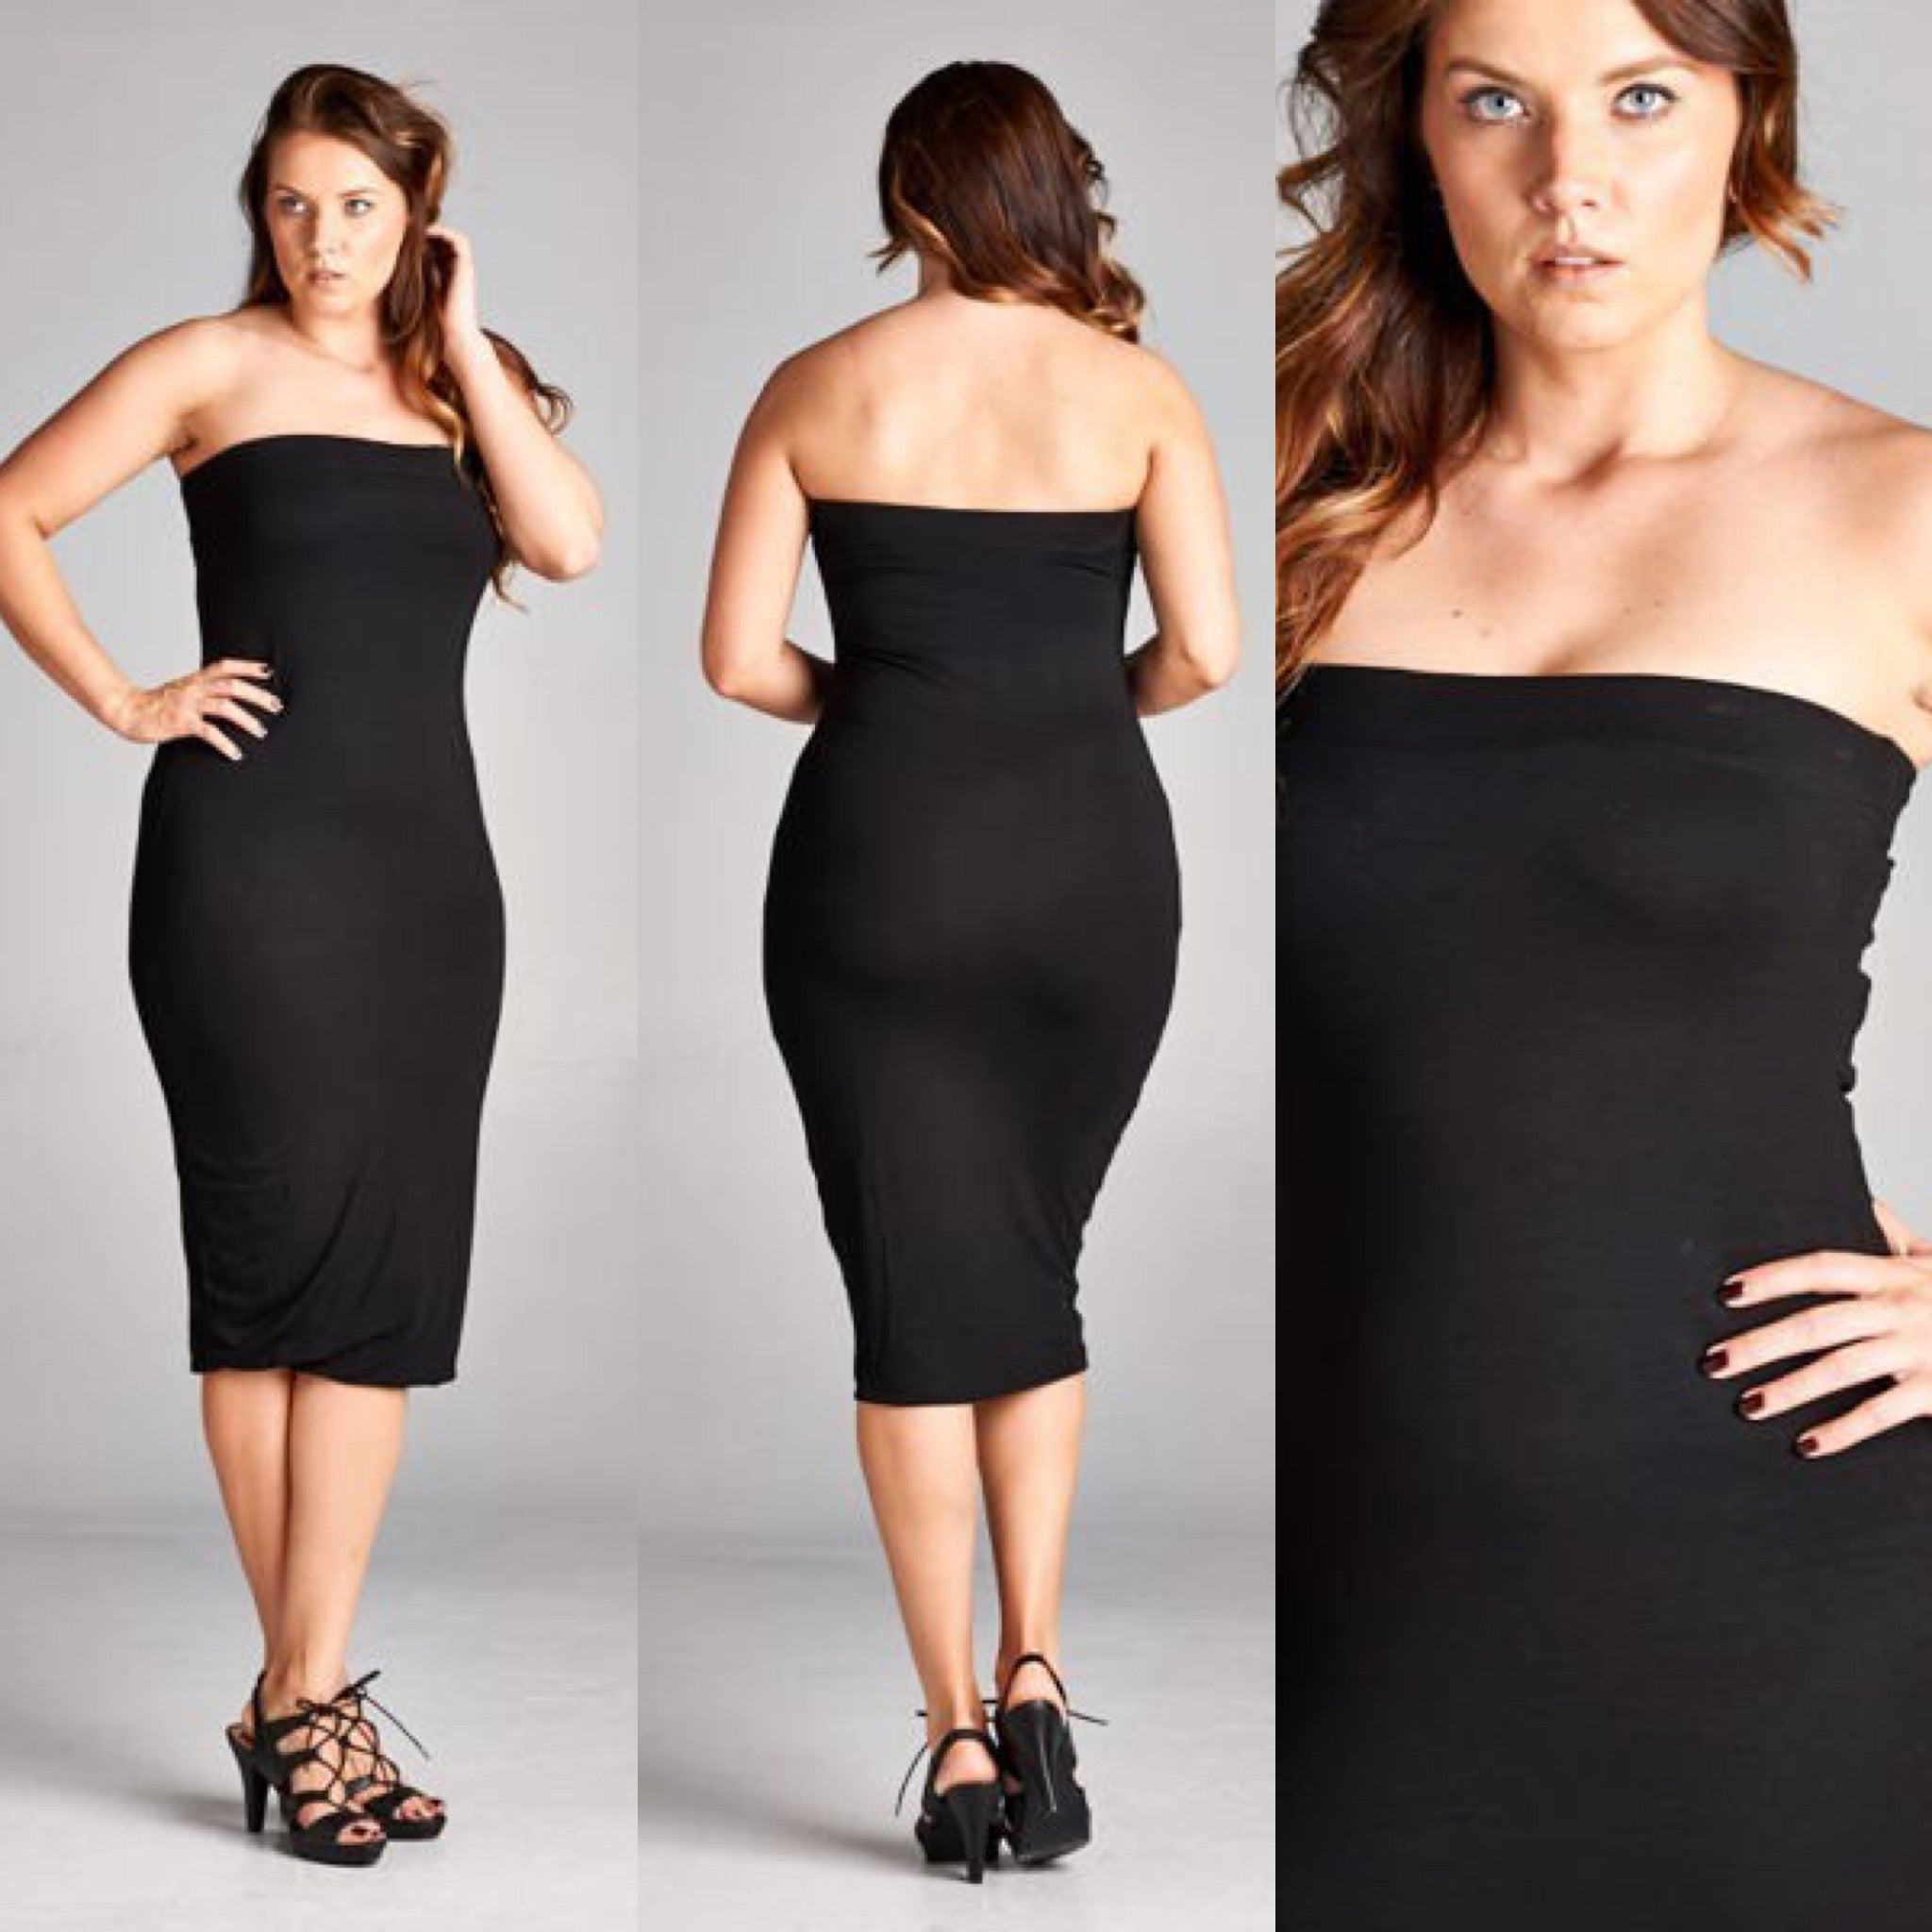 Buy Black Plus Size Strapless Tube Top Dress at Social ...